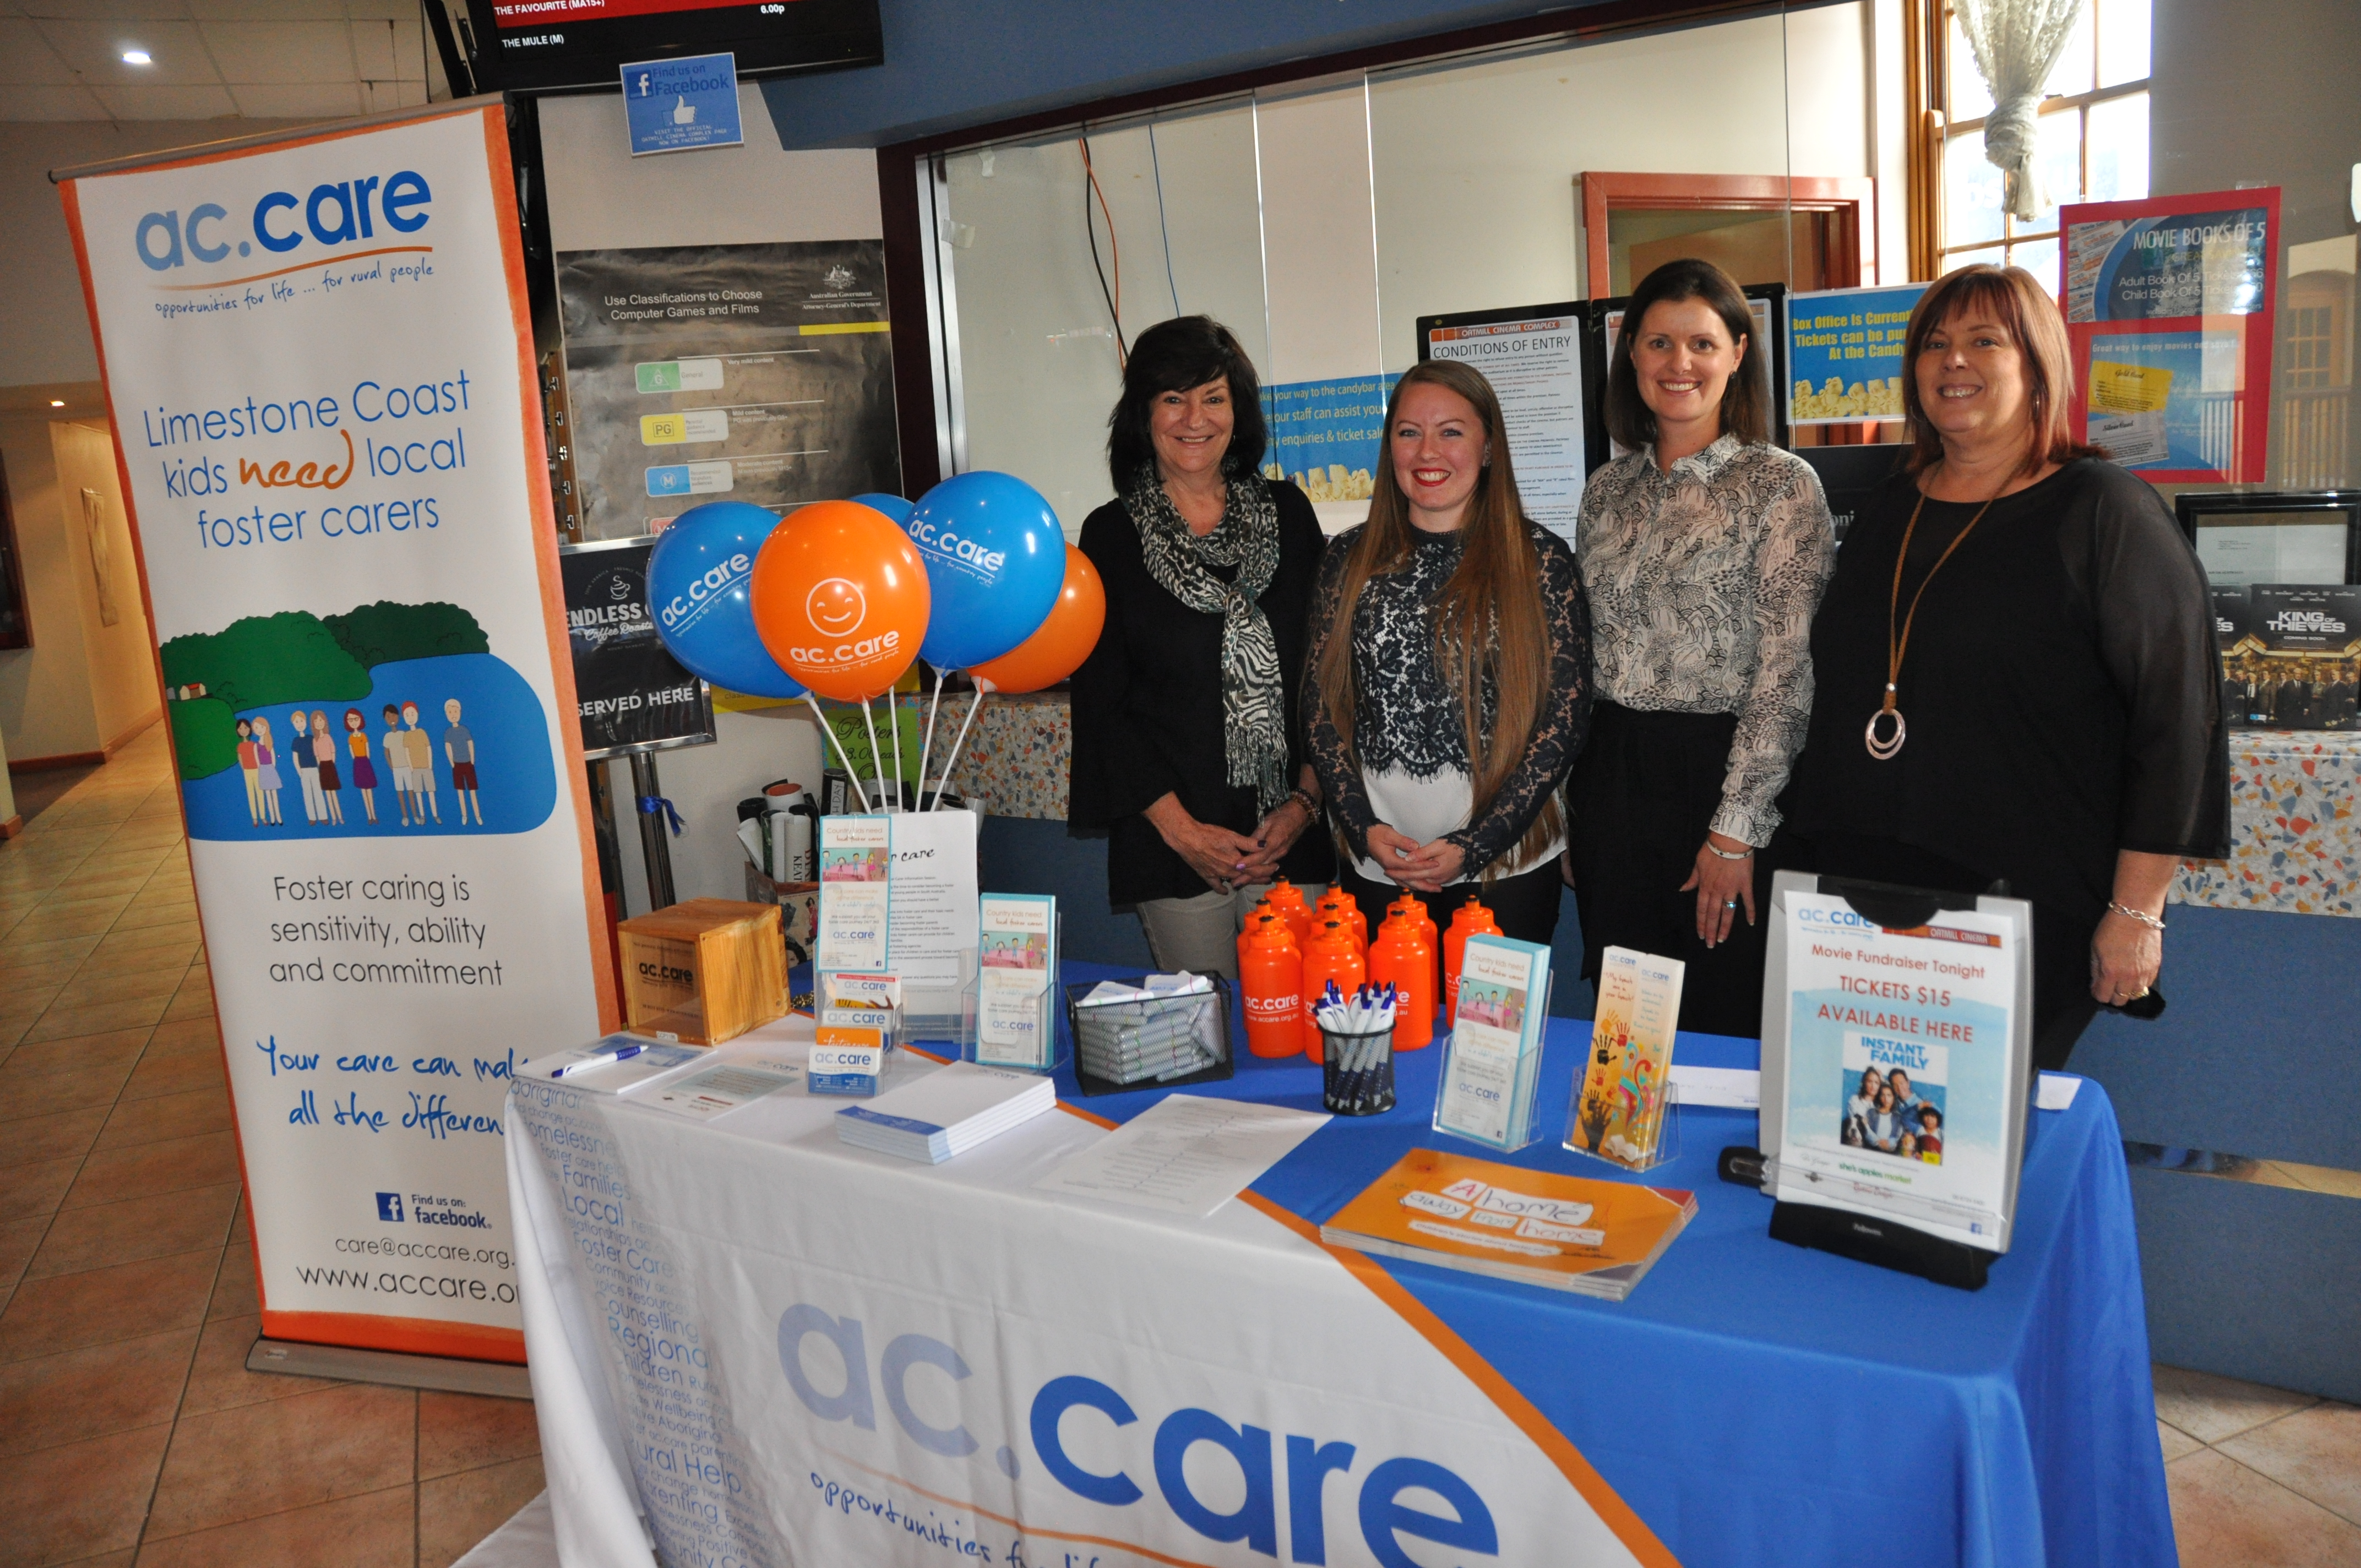 ac.care staff Lisa Fry, Dani Atkinson, Leticia Gosse and Cindy Climas with the foster care information stand at the Oatmill Cinema